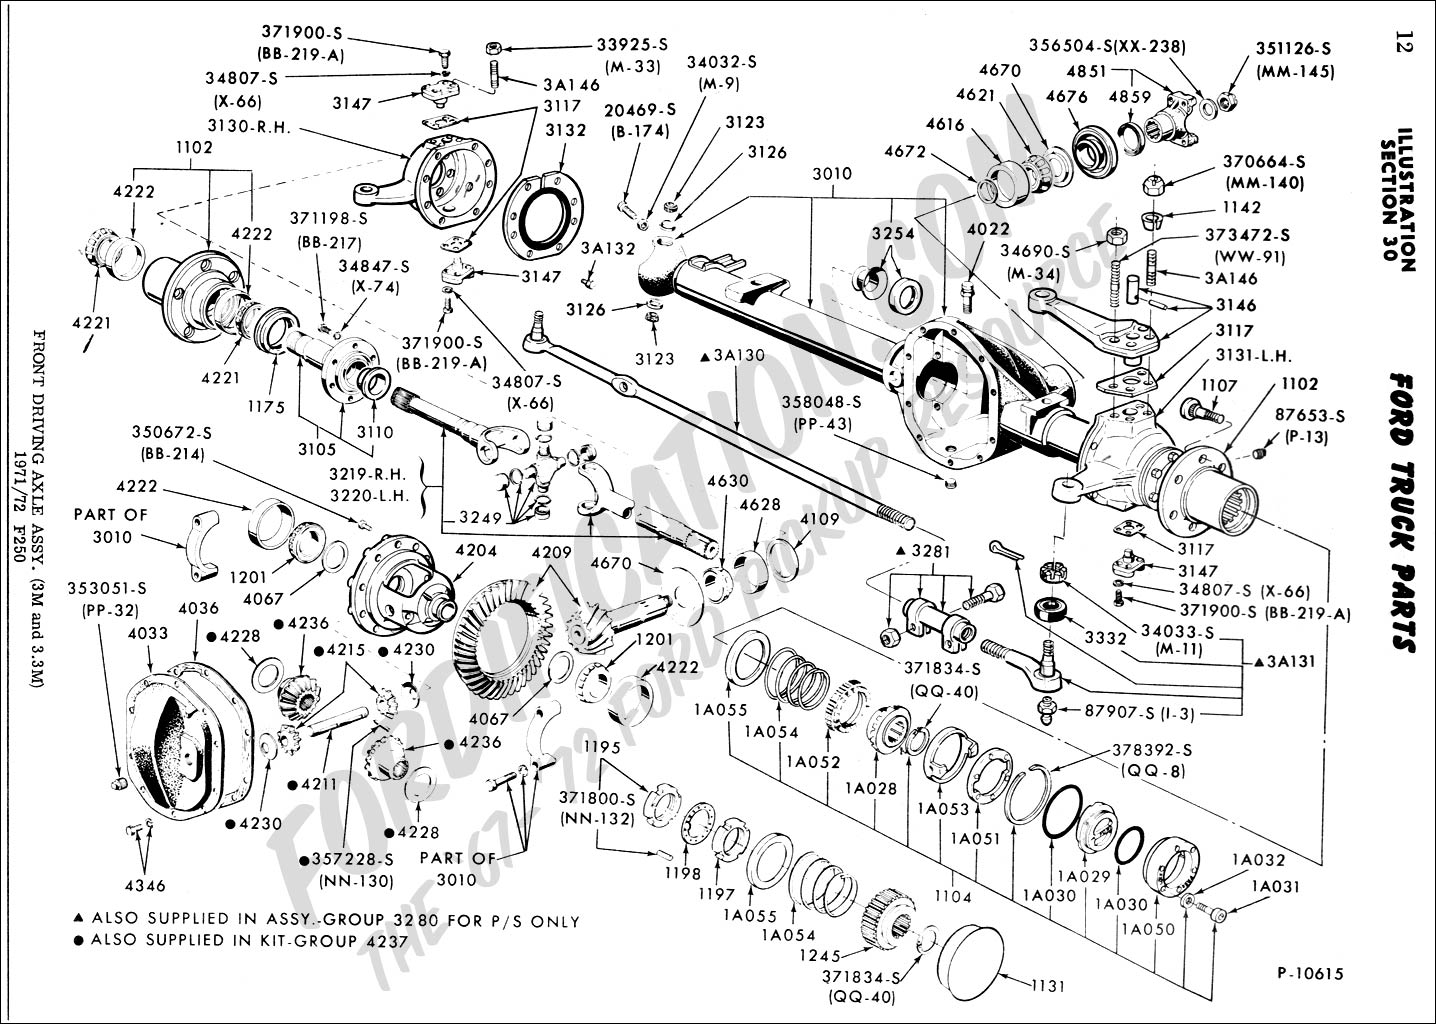 1991 f150 front axle diagram